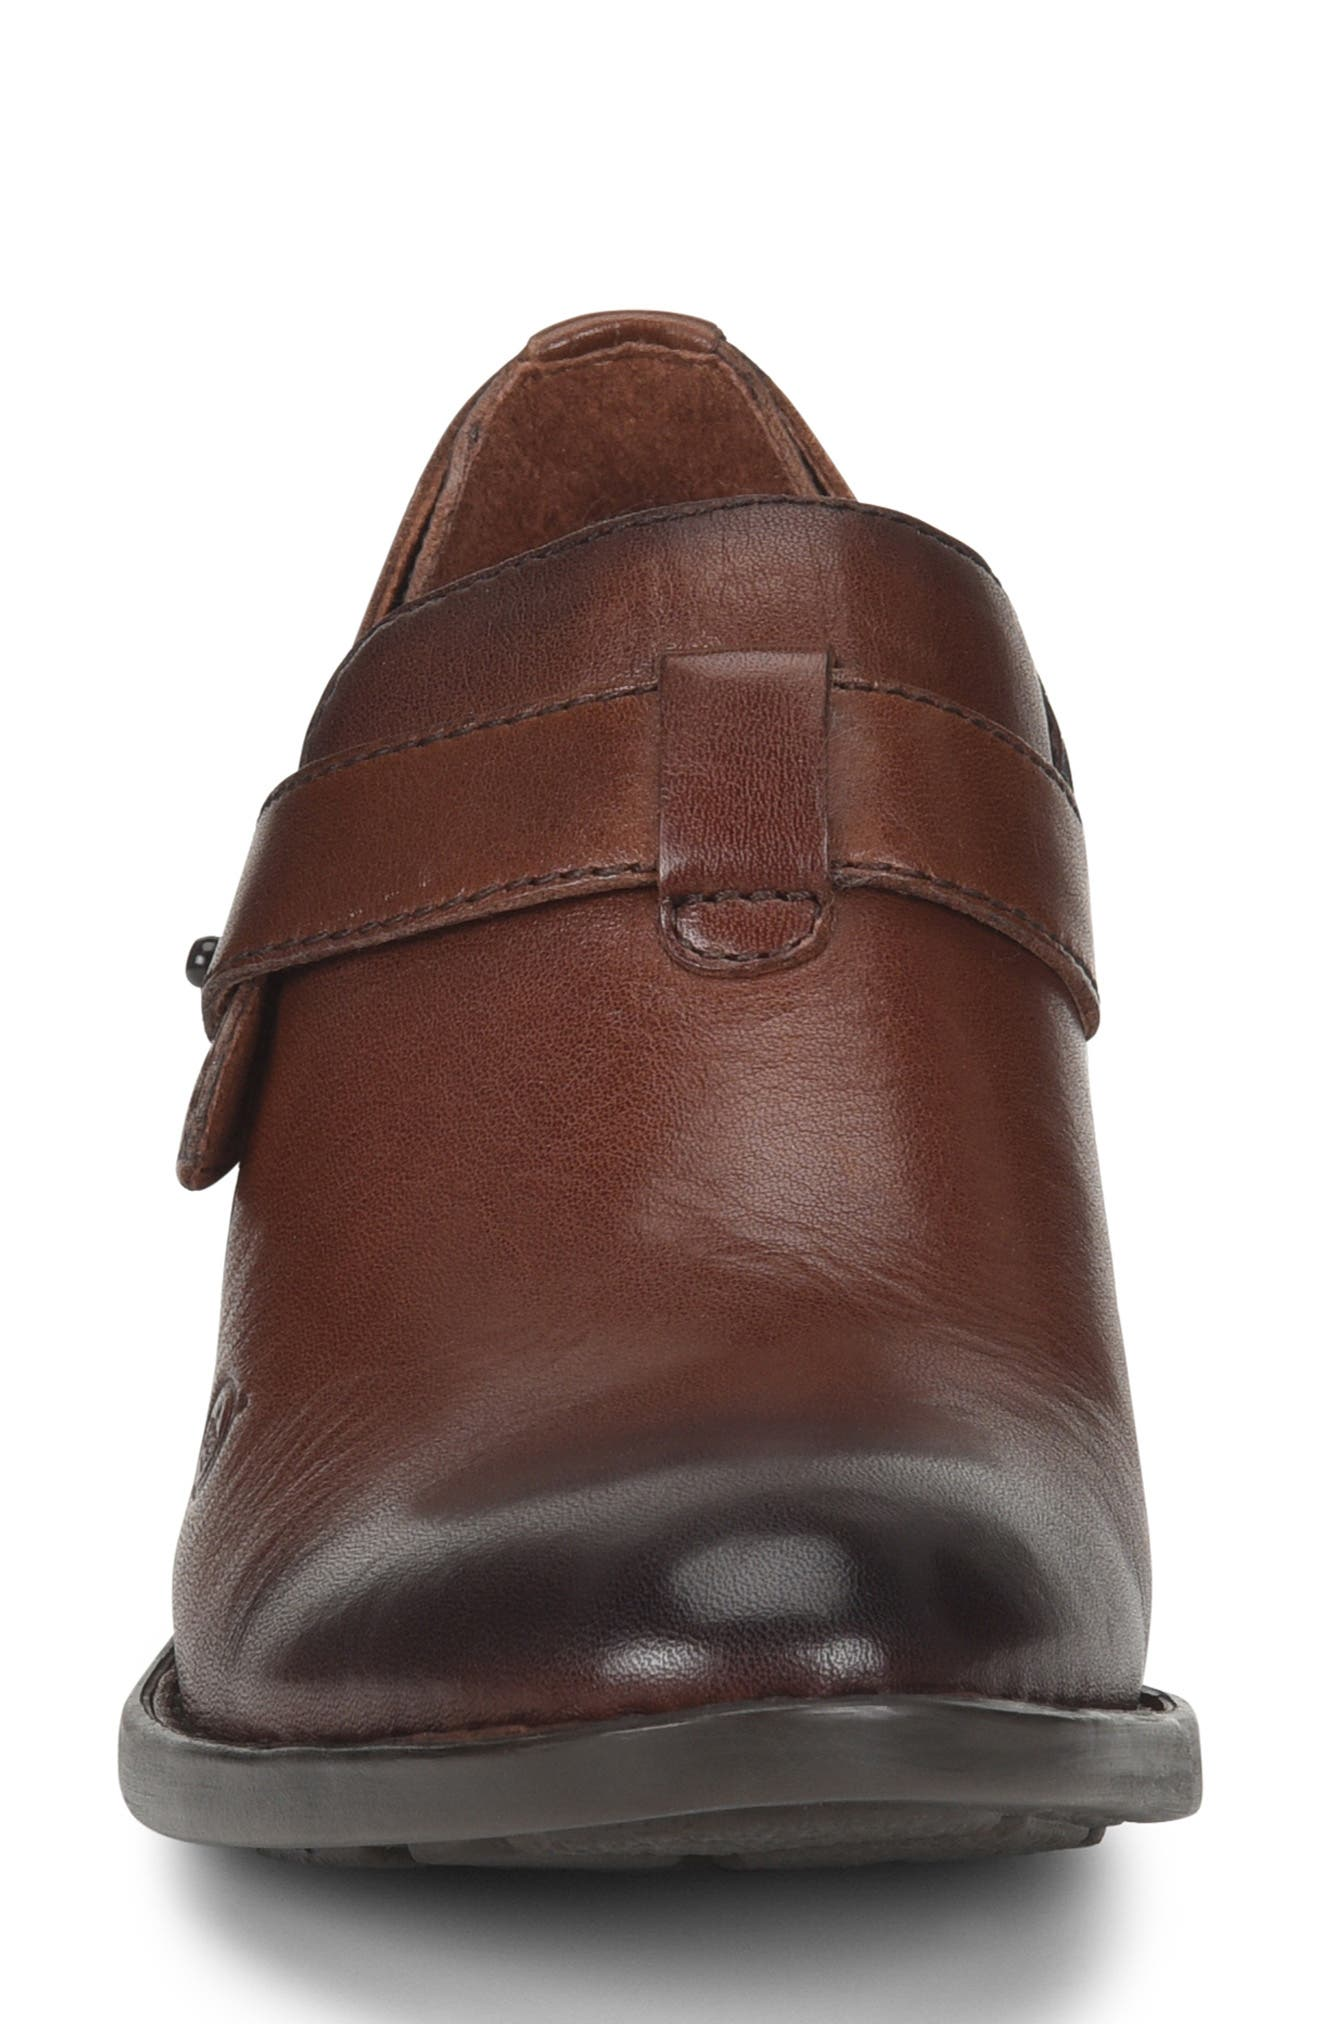 Timmons Bootie,                             Alternate thumbnail 4, color,                             BROWN LEATHER